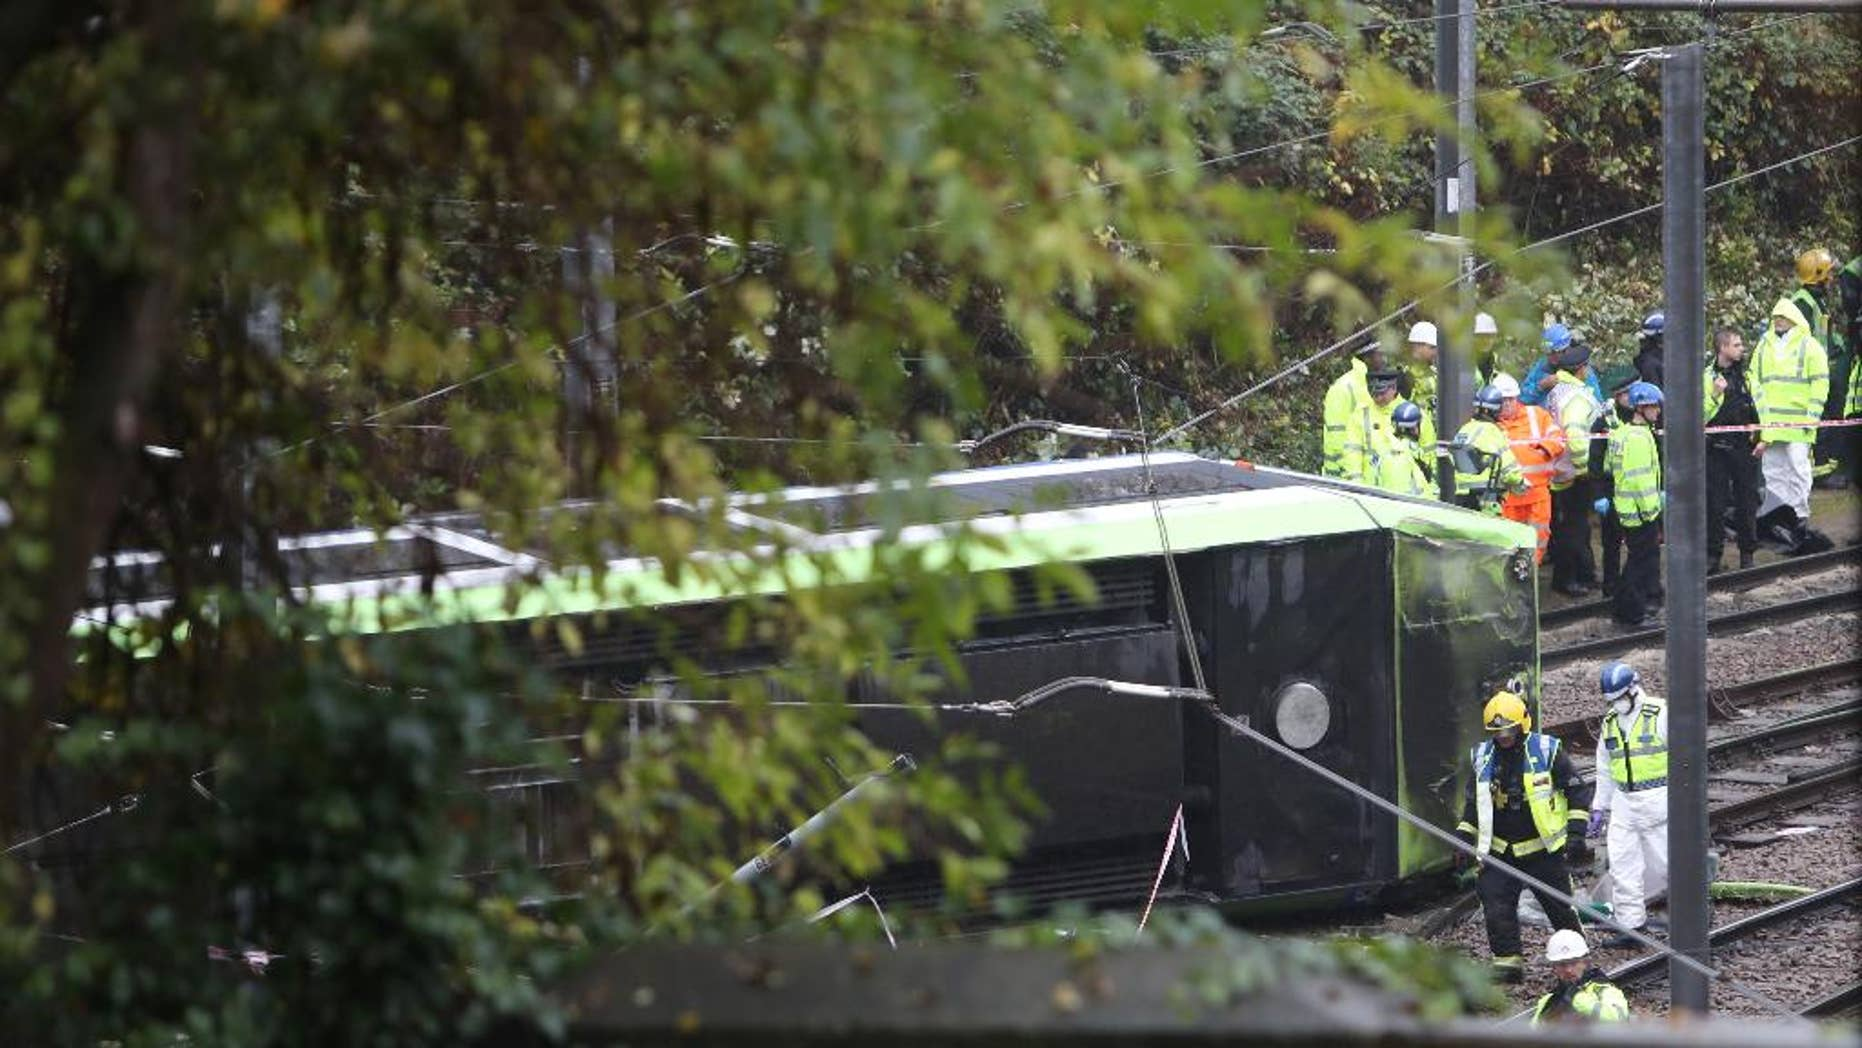 FILE - In this Nov. 9, 2016 file photo, the scene after a tram overturned in Croydon, south London. Investigators have determined that a London tram that crashed last week, killing seven people, was traveling at nearly four times the speed limit when it derailed. (Steve Parsons/PA, AP, File)